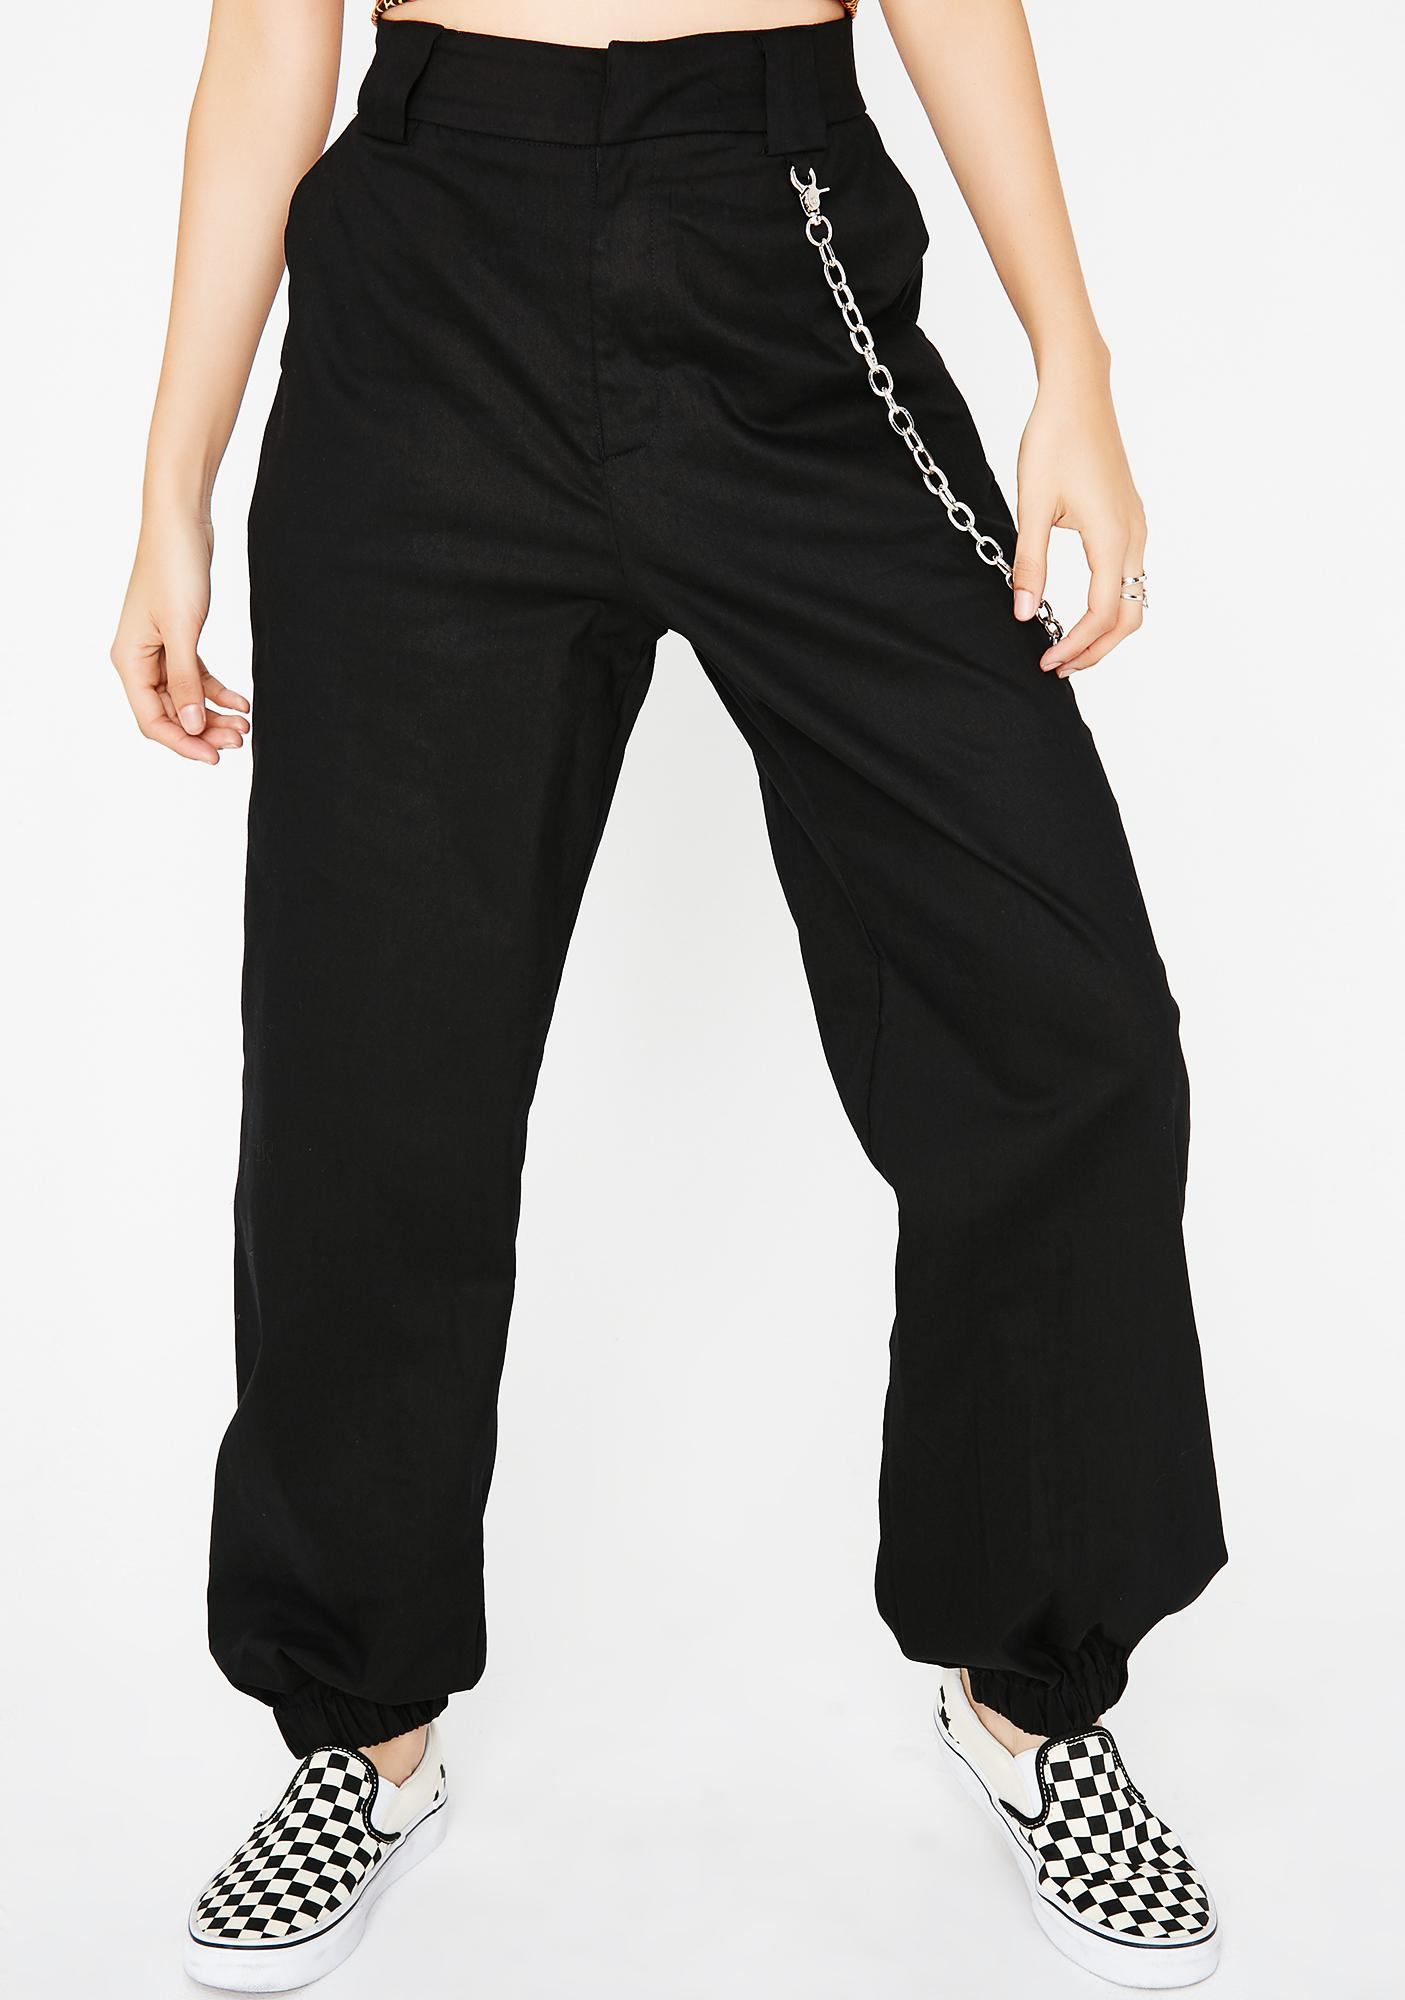 Ink Kim Probable Chain Pants